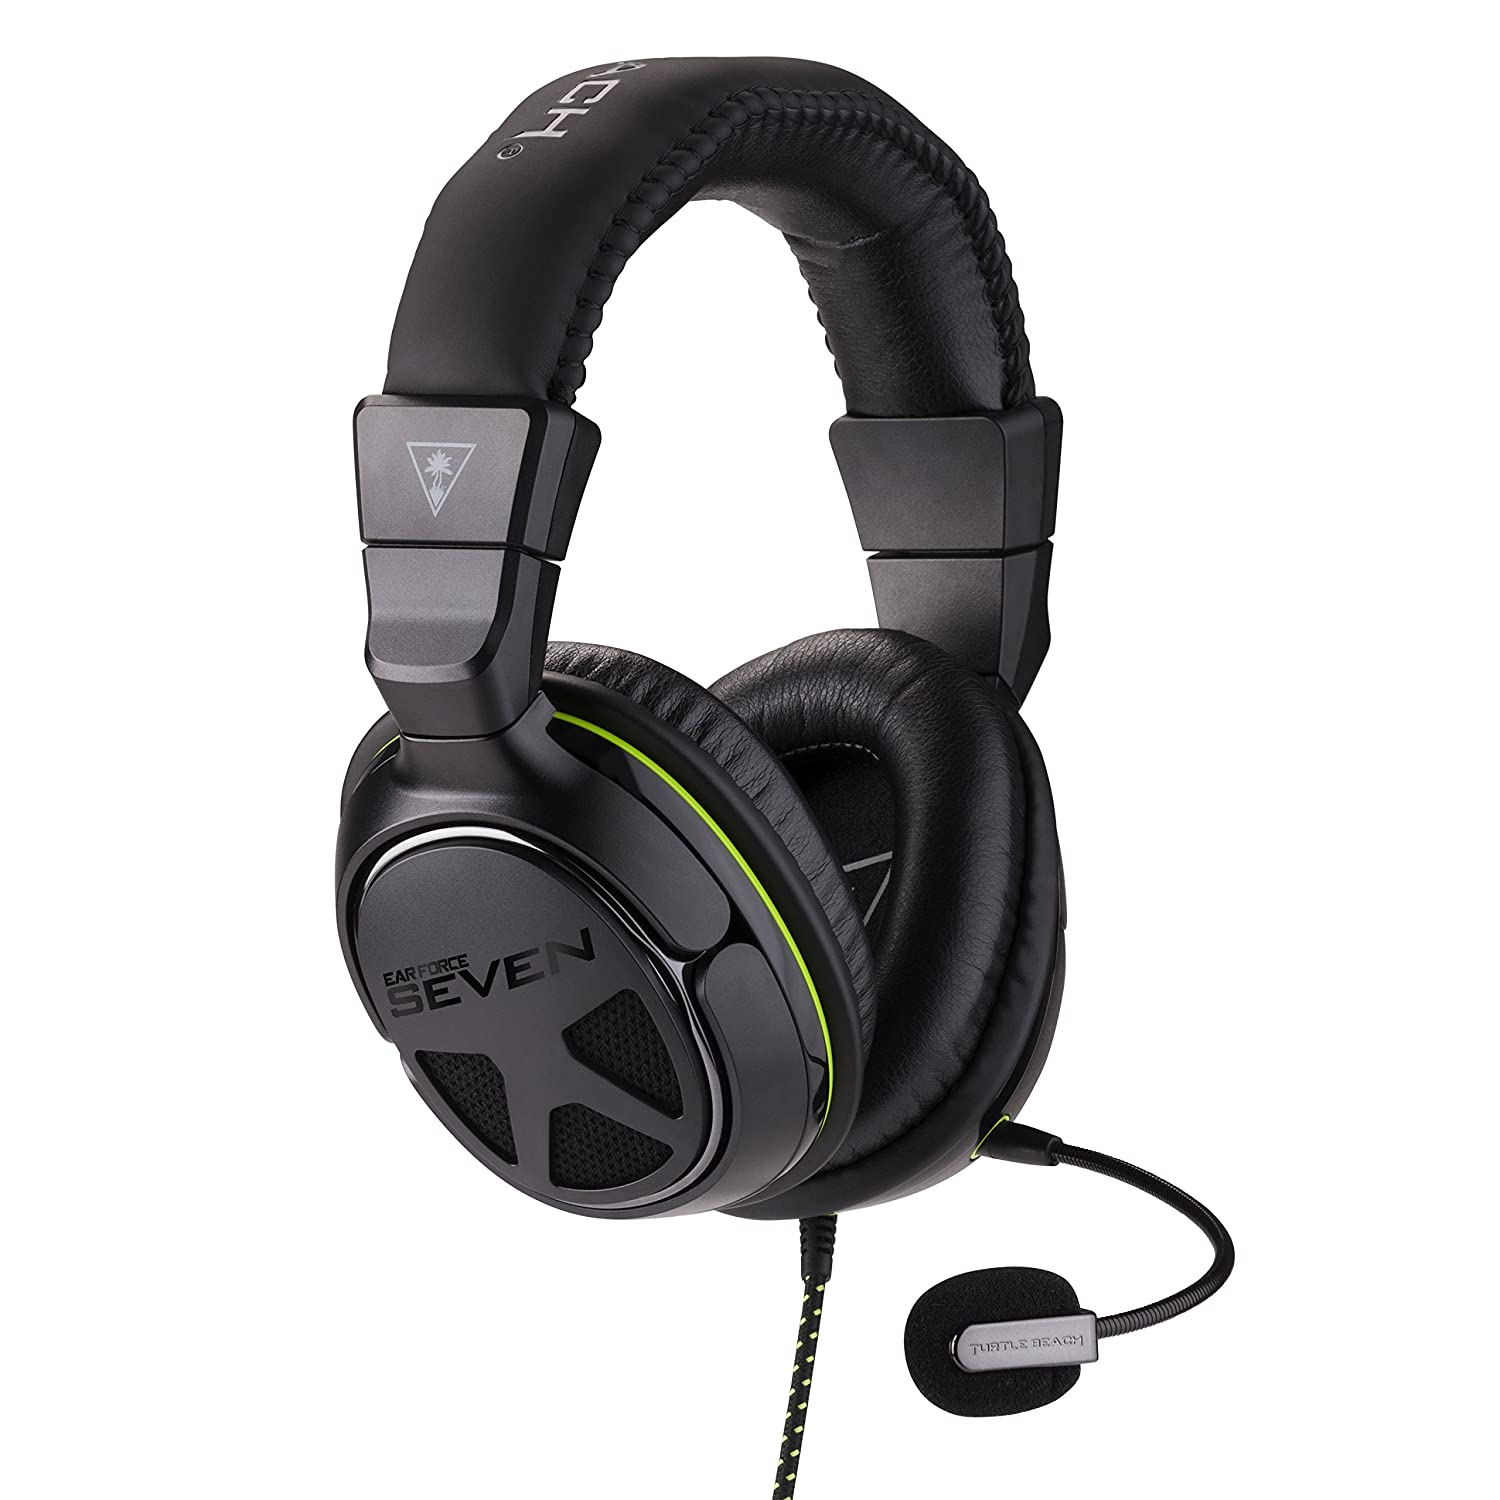 8194653a8ed Amazon.com: Turtle Beach - Ear Force XO Seven Pro Premium Gaming Headset -  Superhuman Hearing - Xbox One (Discontinued by Manufacturer): Video Games